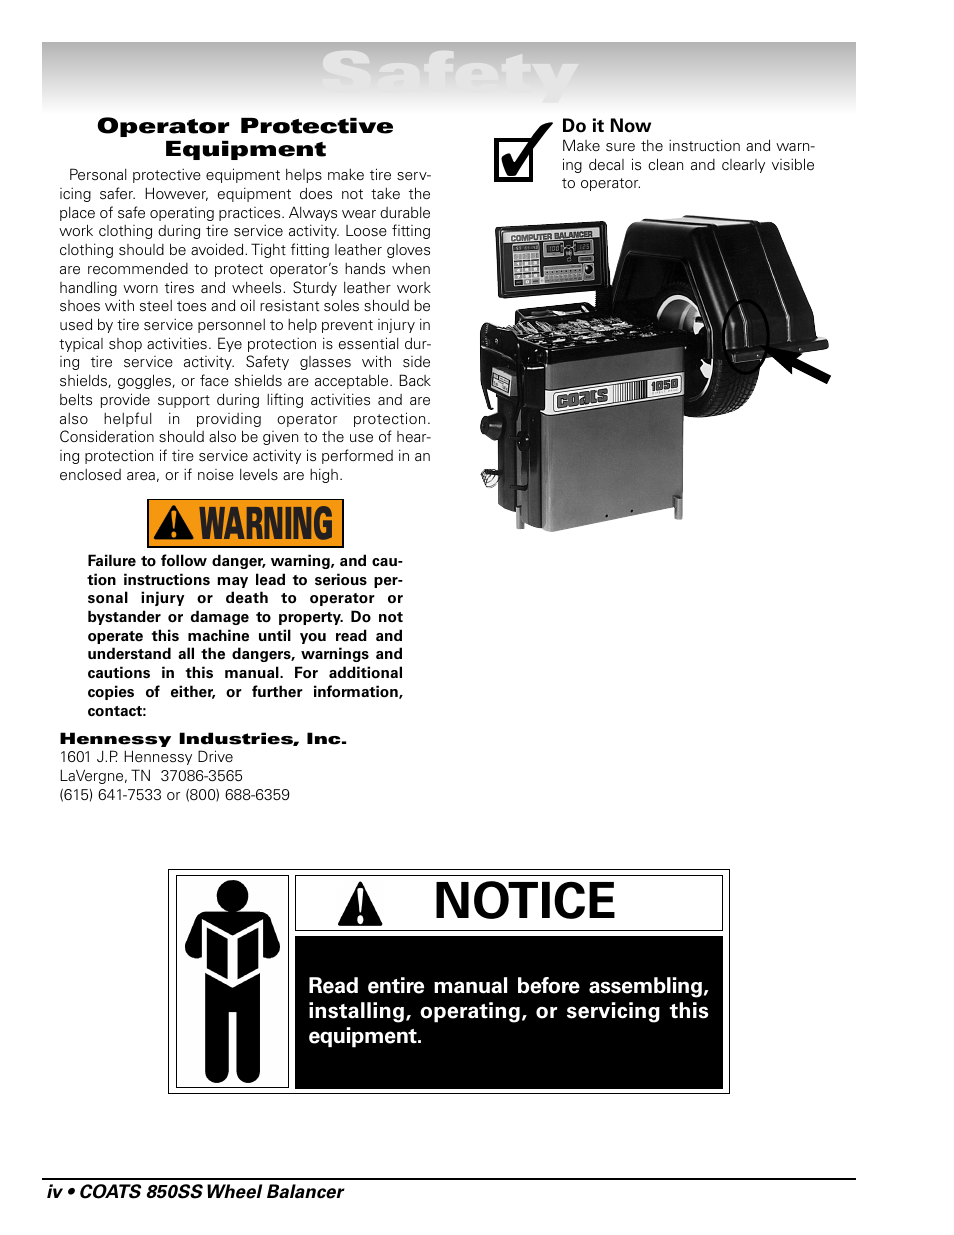 Safety, Notice, Warning | COATS 850 Solid State Wheel Balancer User Manual  | Page 4 / 20